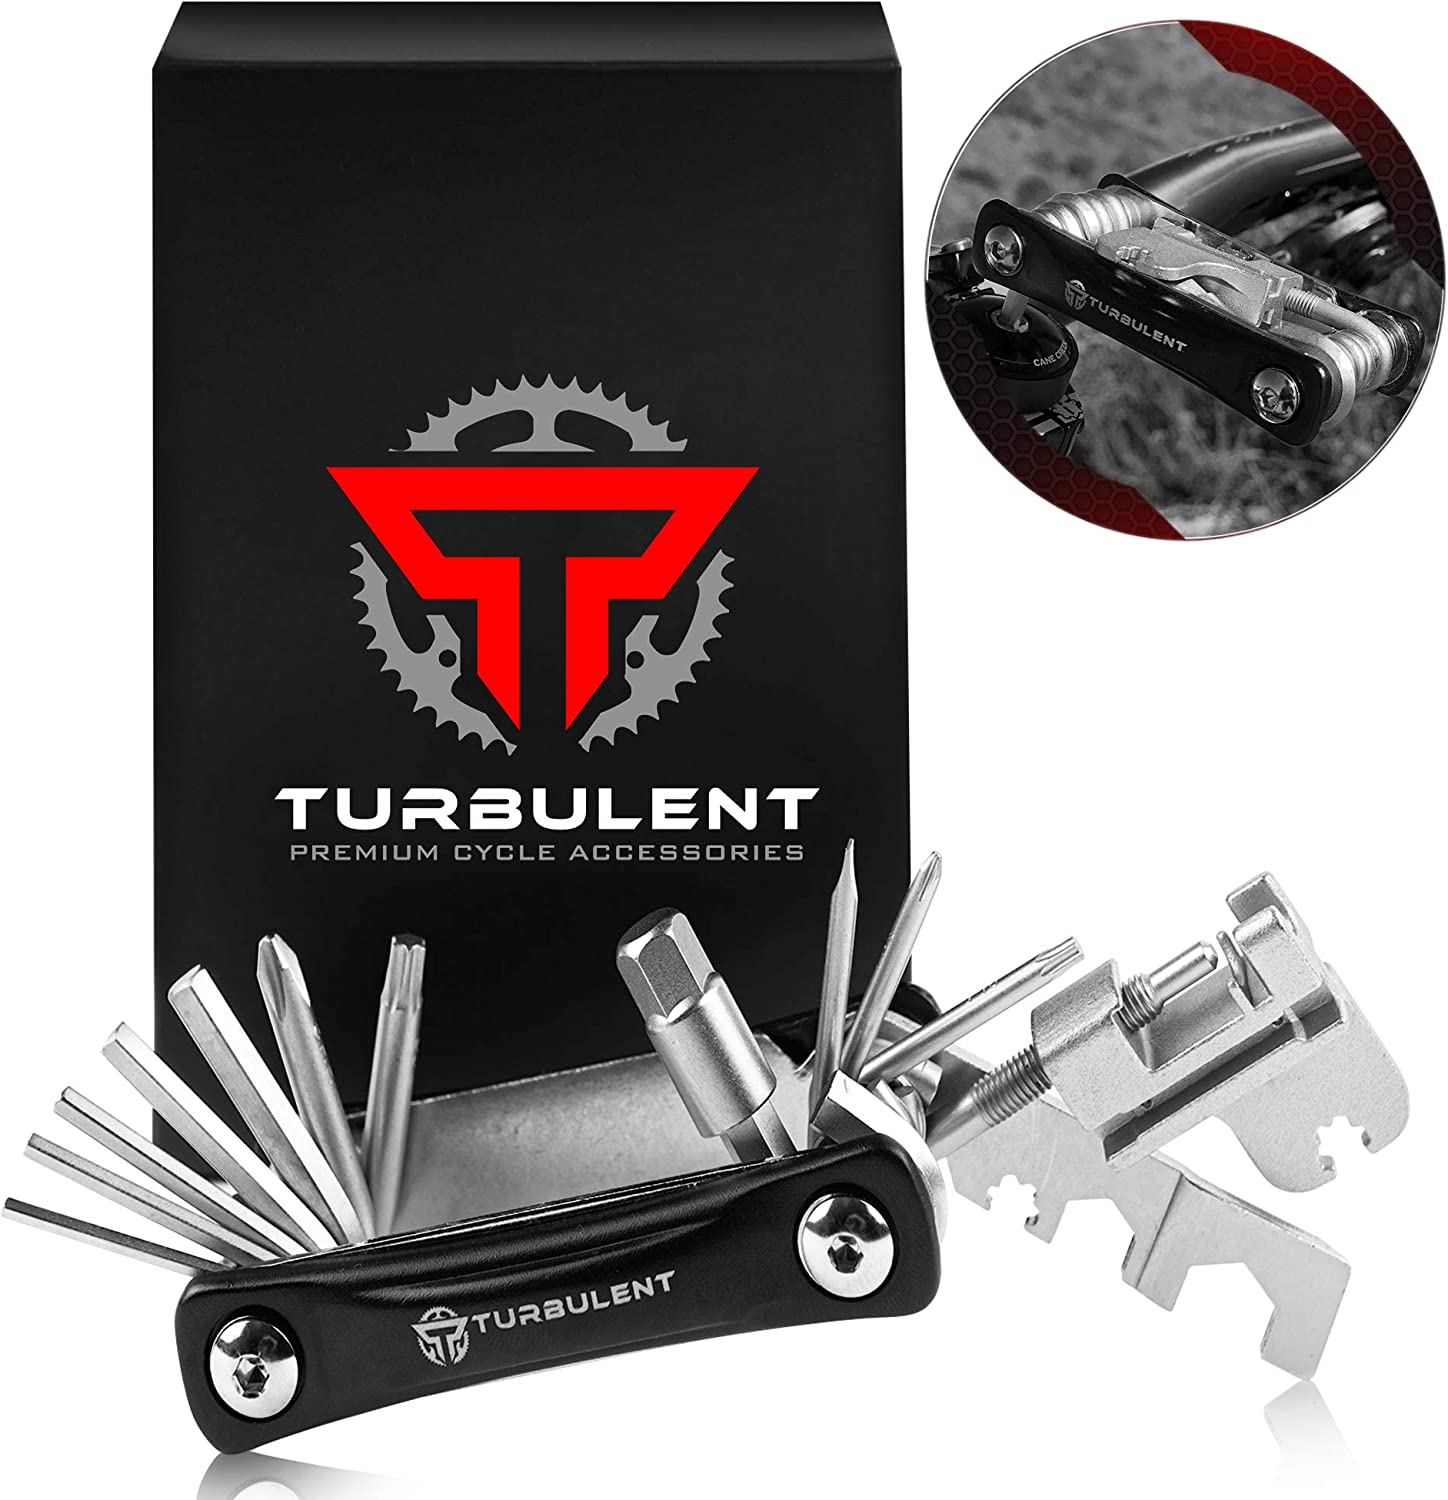 Turbulent Universal Bike Multitool - The Ultimate 23 in 1 Portable Sized Tool Kit with Chain Breaker, Allen Keys, Spoke Tool and More - Heavy Duty Multi Function Bicycle Repair Tool: Home Improvement